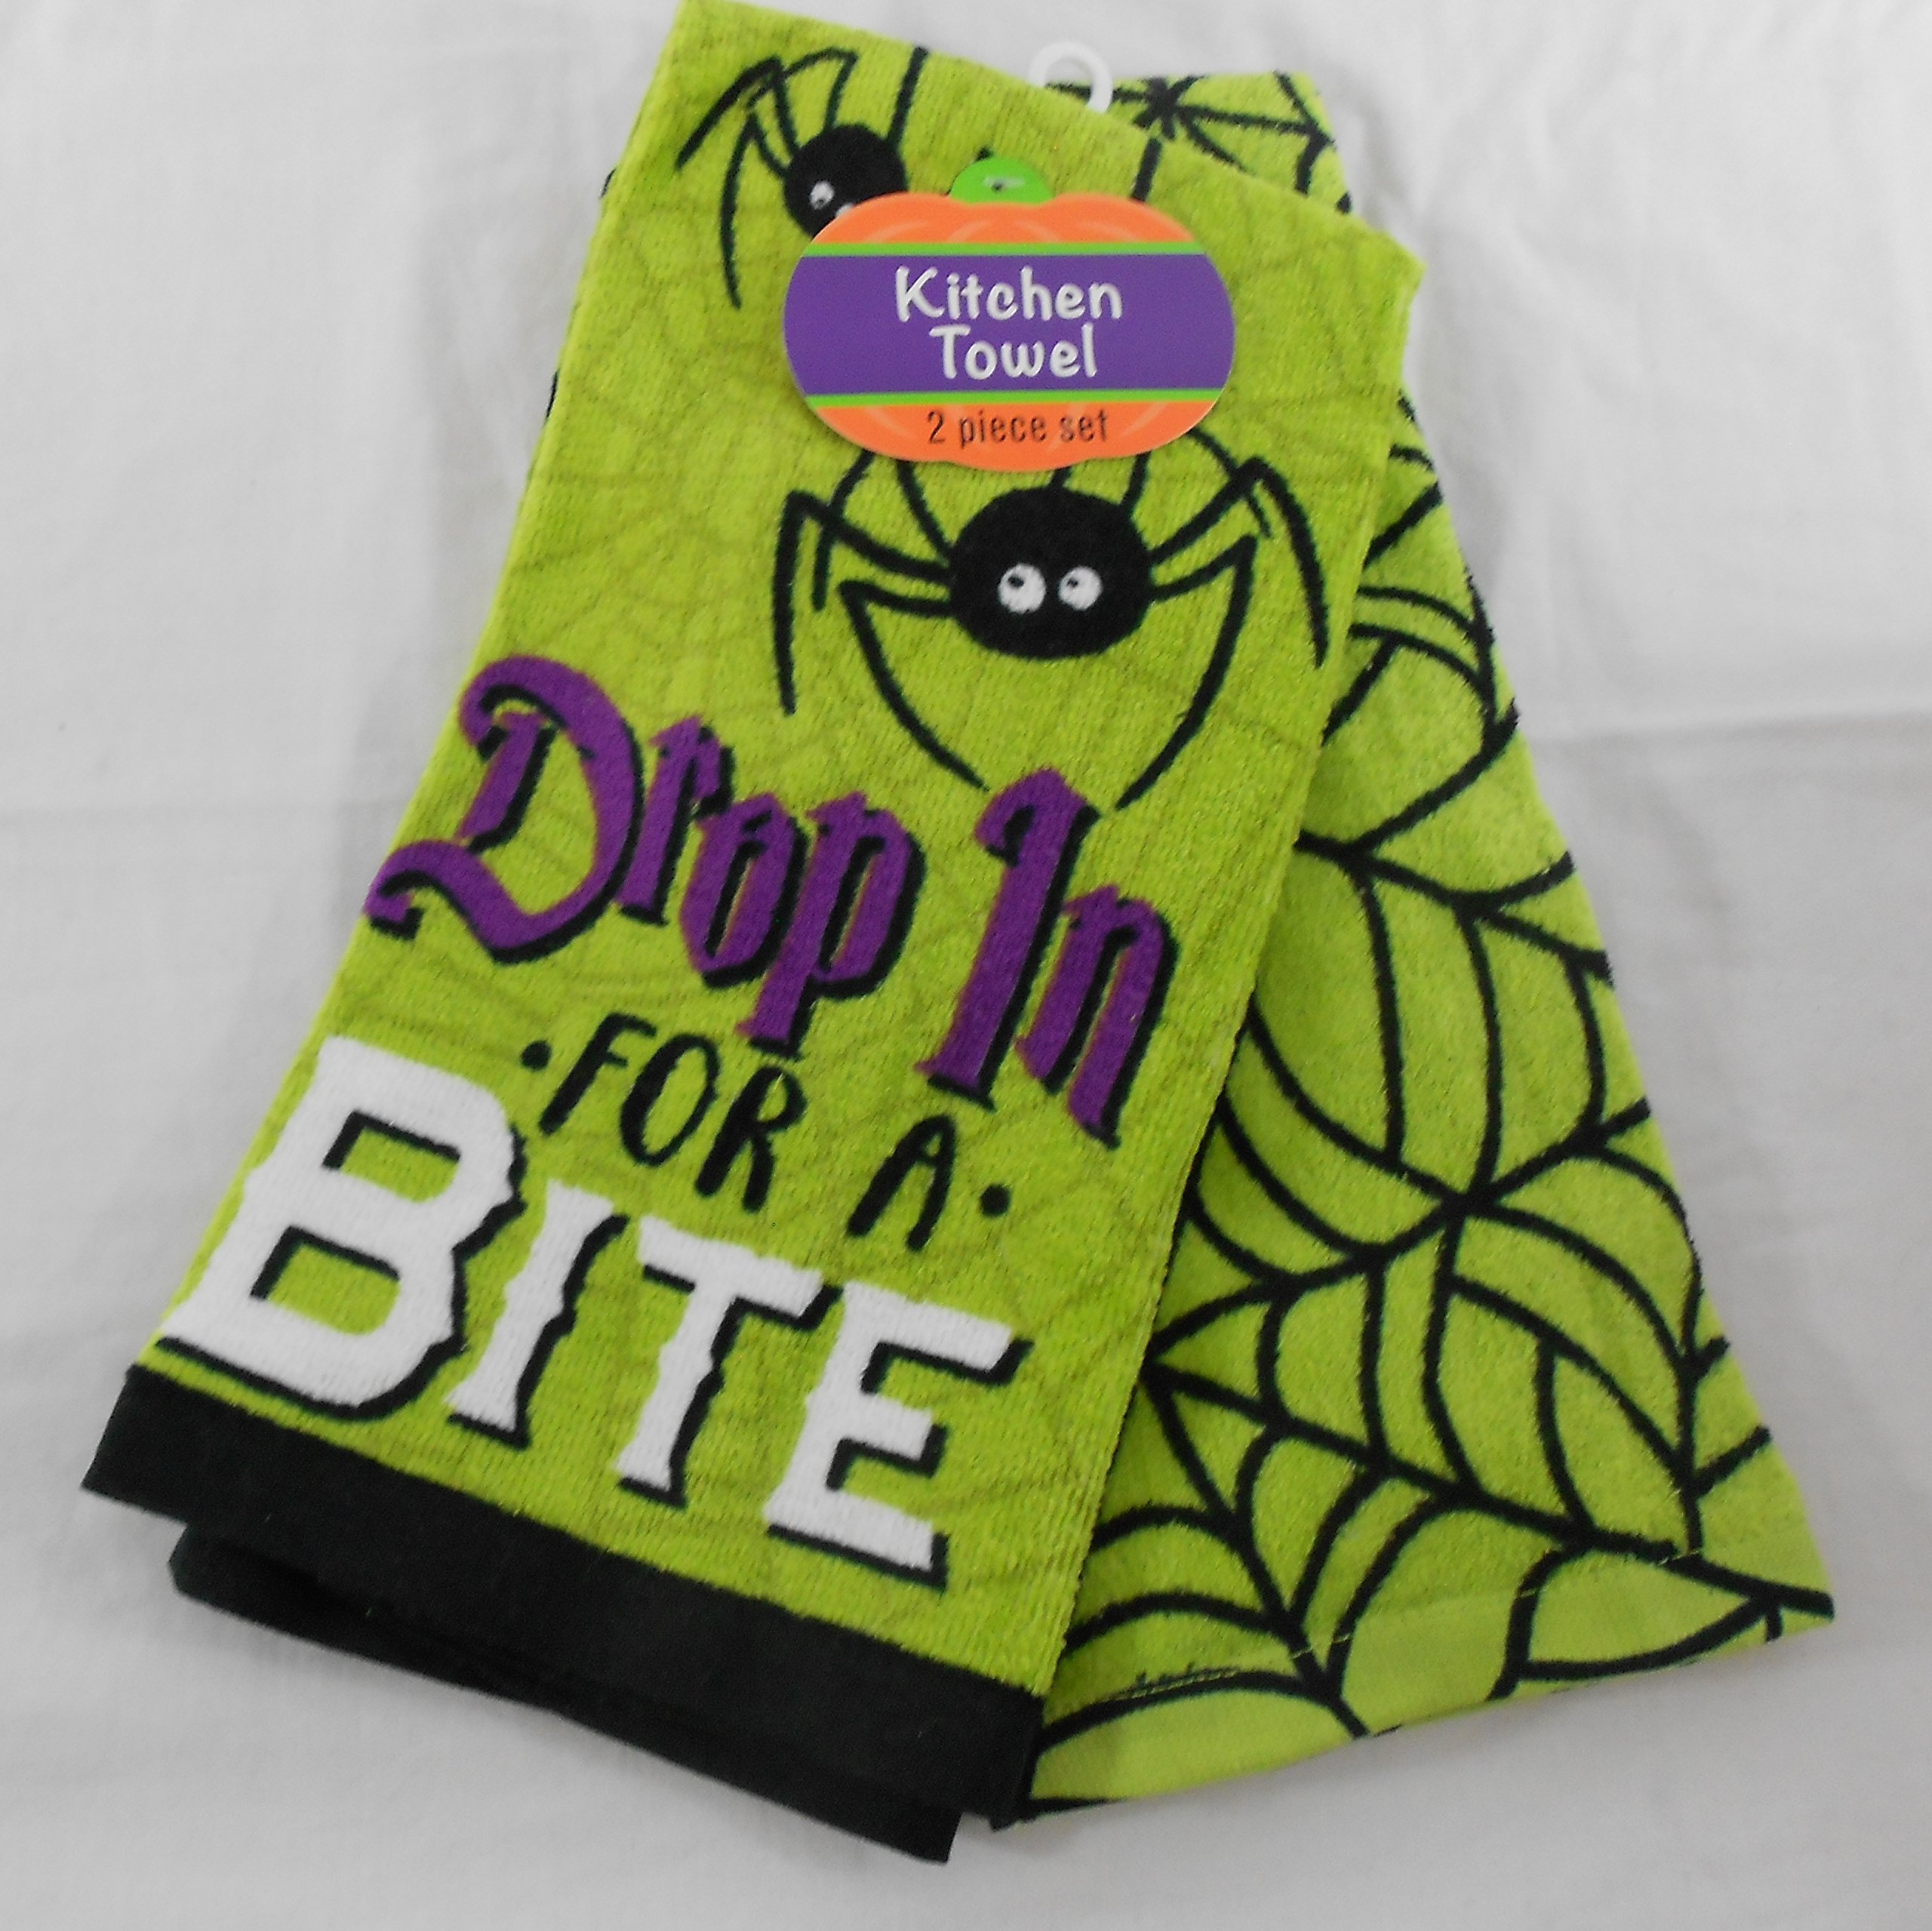 Halloween Drop in for A Bite Kitchen Towel Set of 2 by Halloween